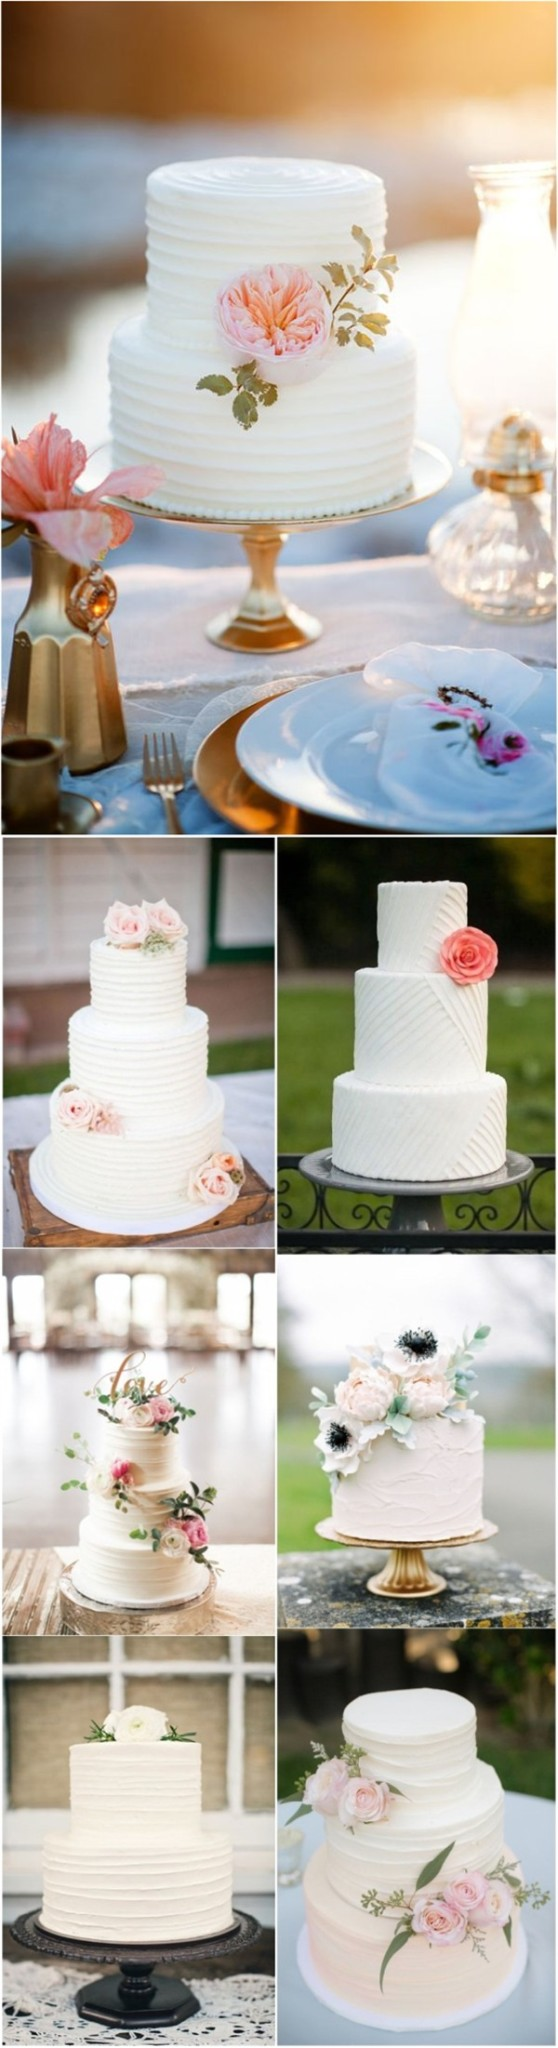 simple white wedding cakes with flowers inspirations